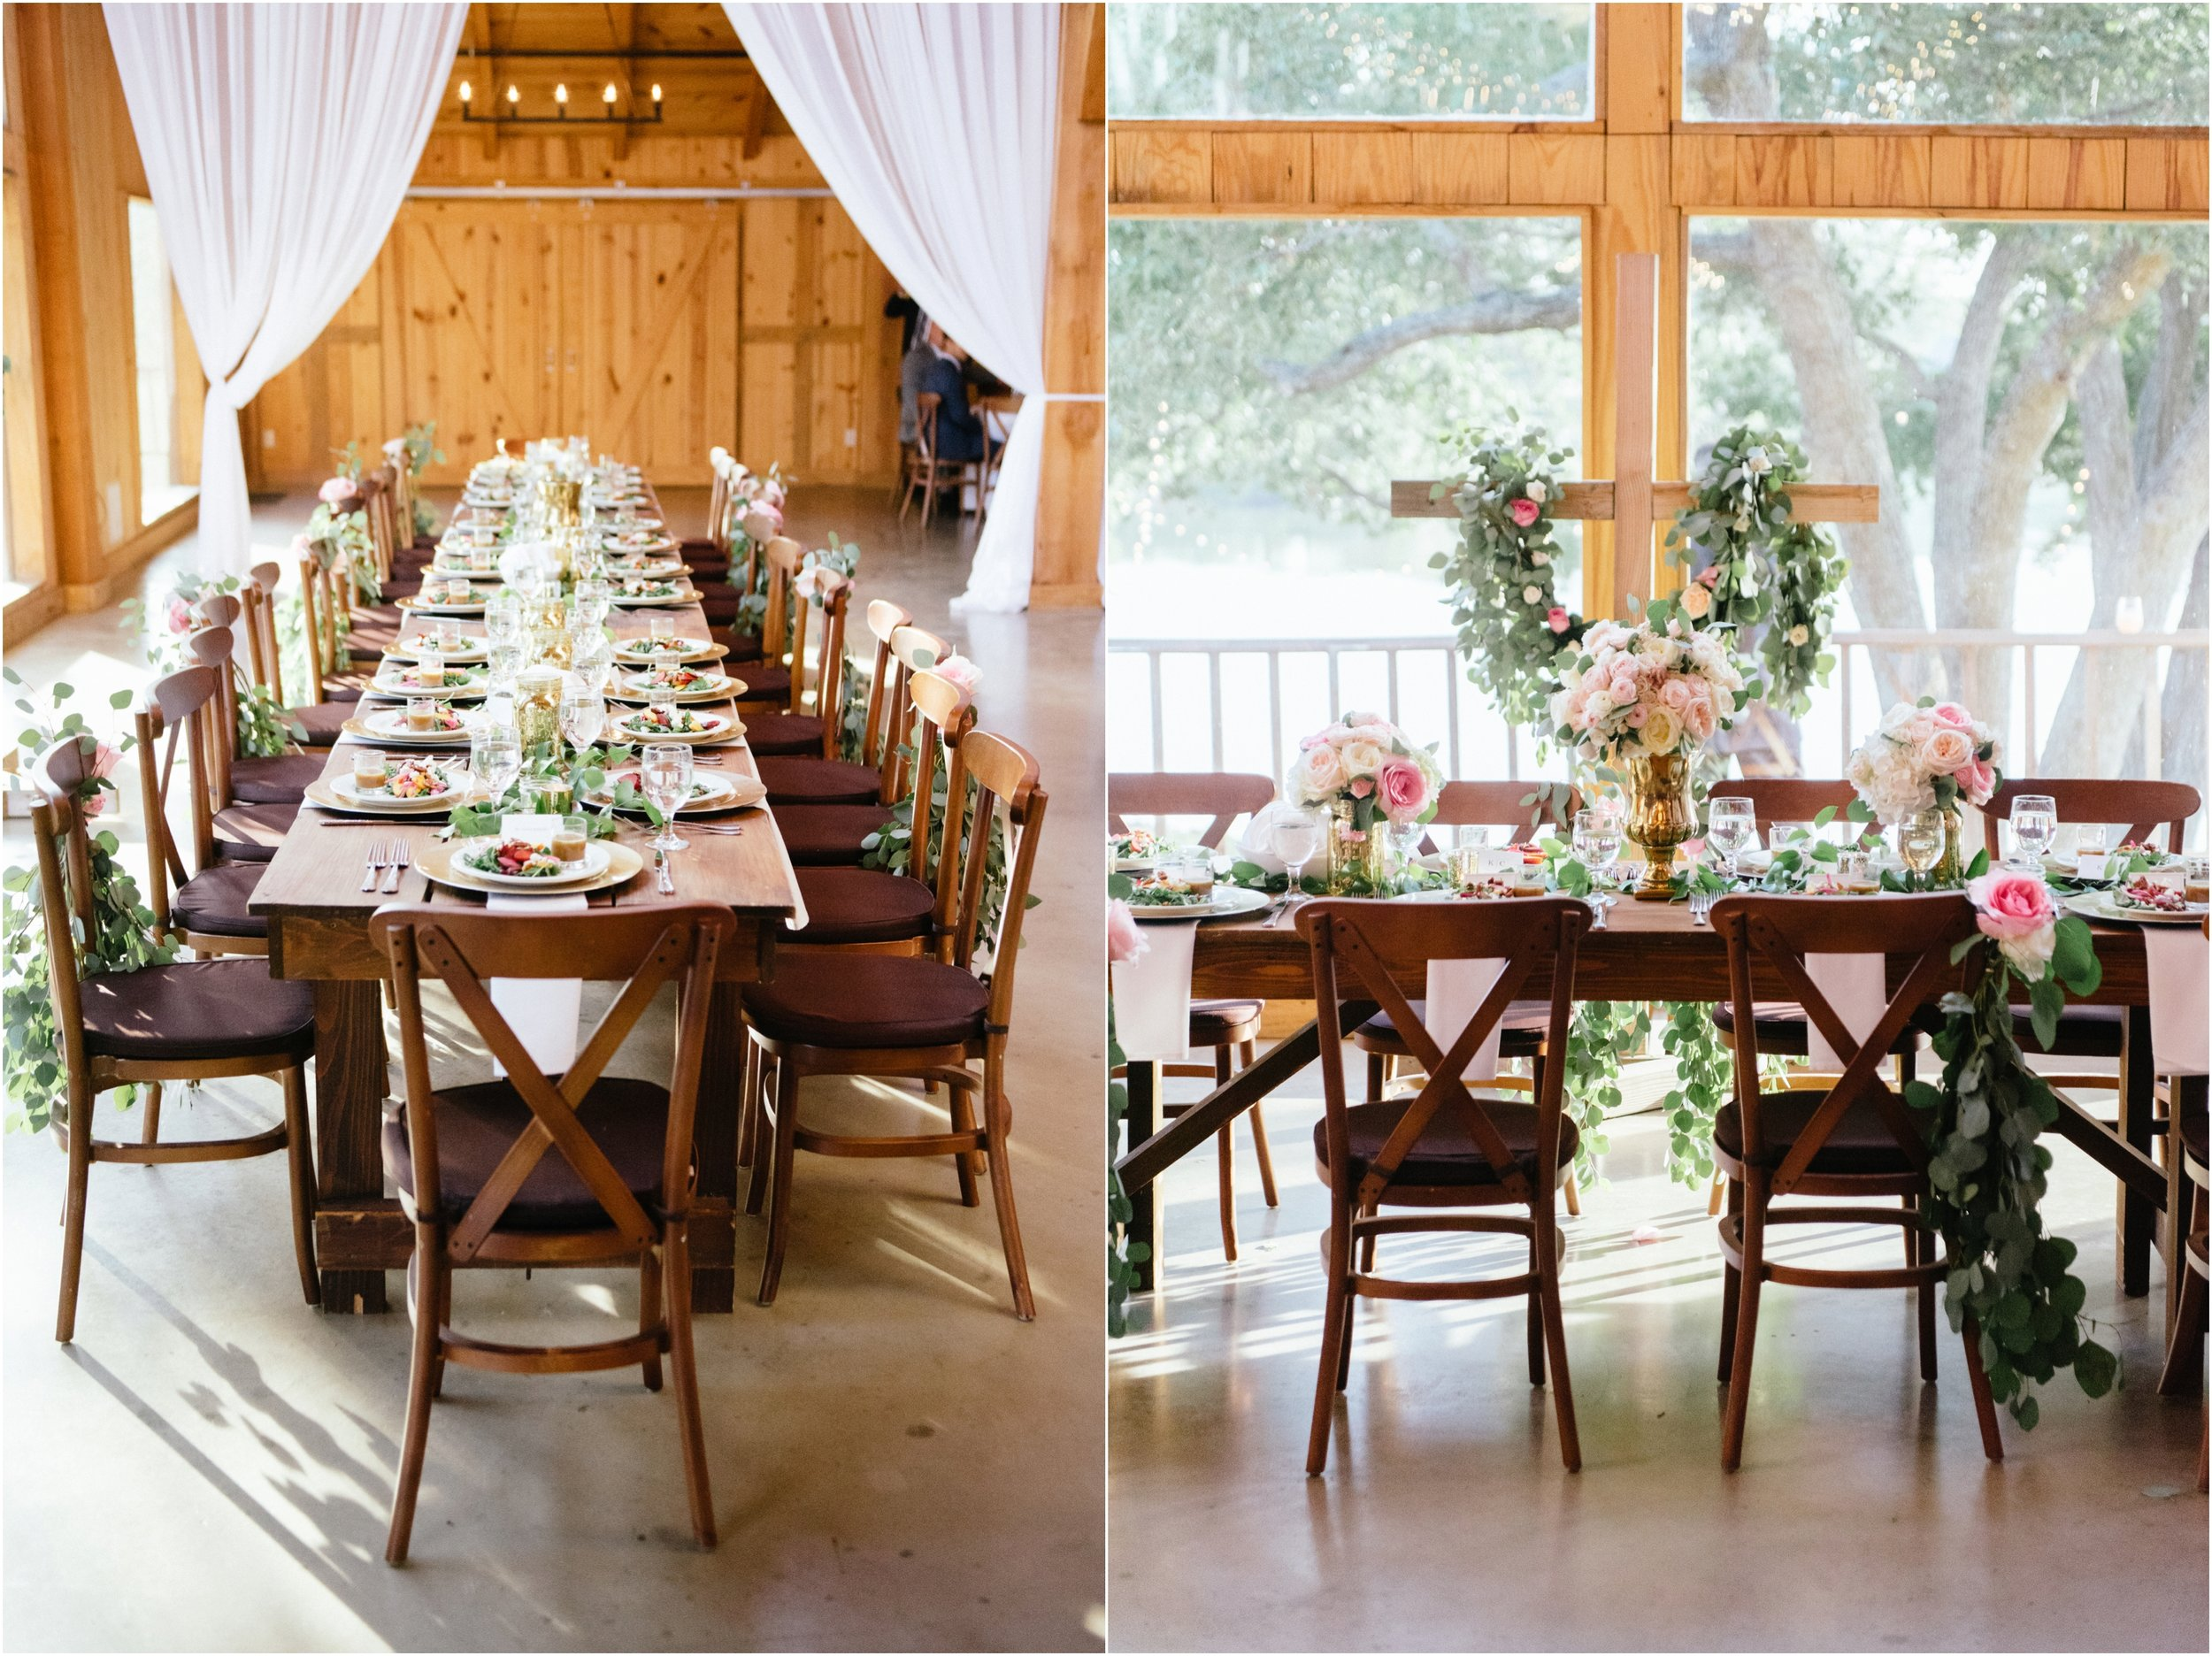 dallasweddingphotographer_fortworthweddingphotographer_texasweddingphotographer_mattandjulieweddings_whiterocklakewedding_KayleighClay_0031.jpg